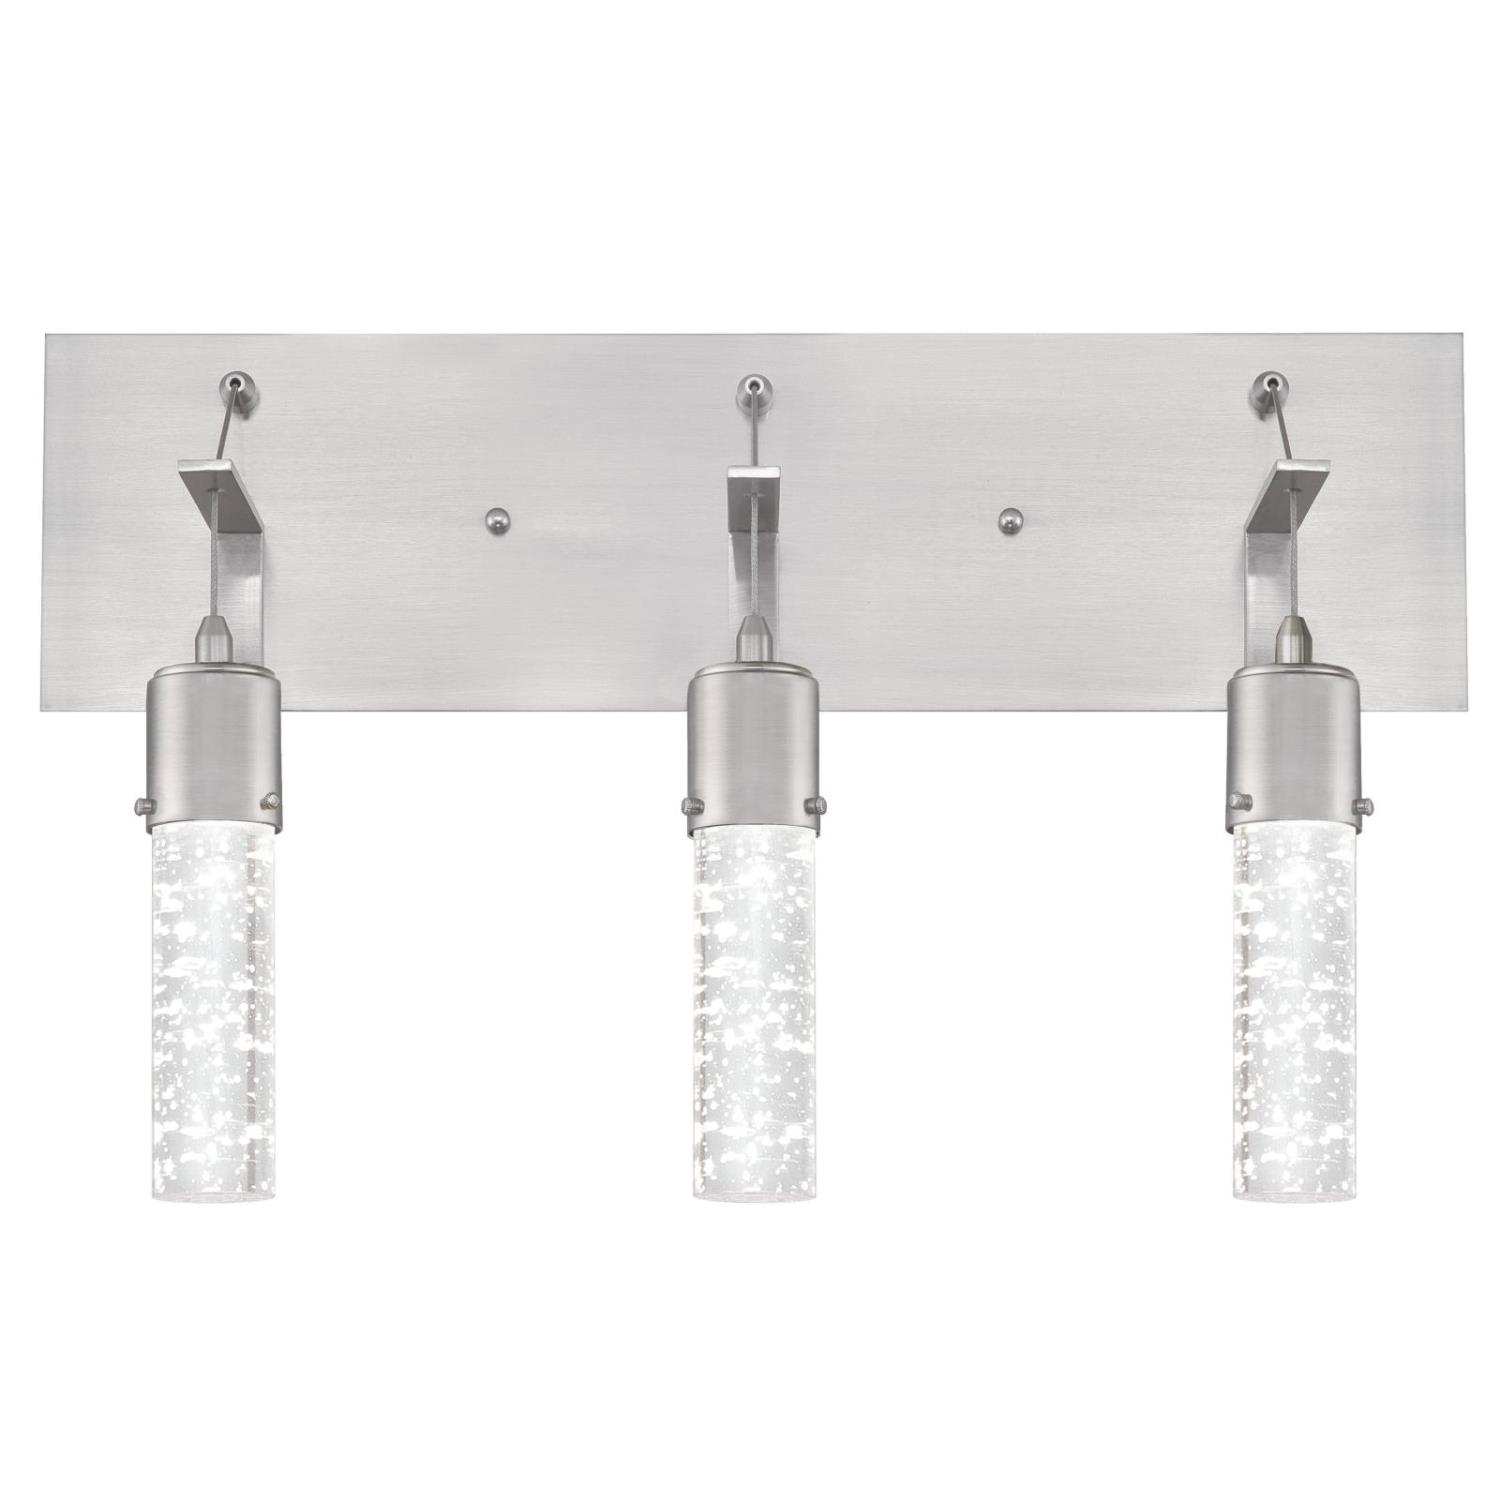 22W 3 Light LED Wall Fixture Brushed Nickel Finish with Bubble Glass